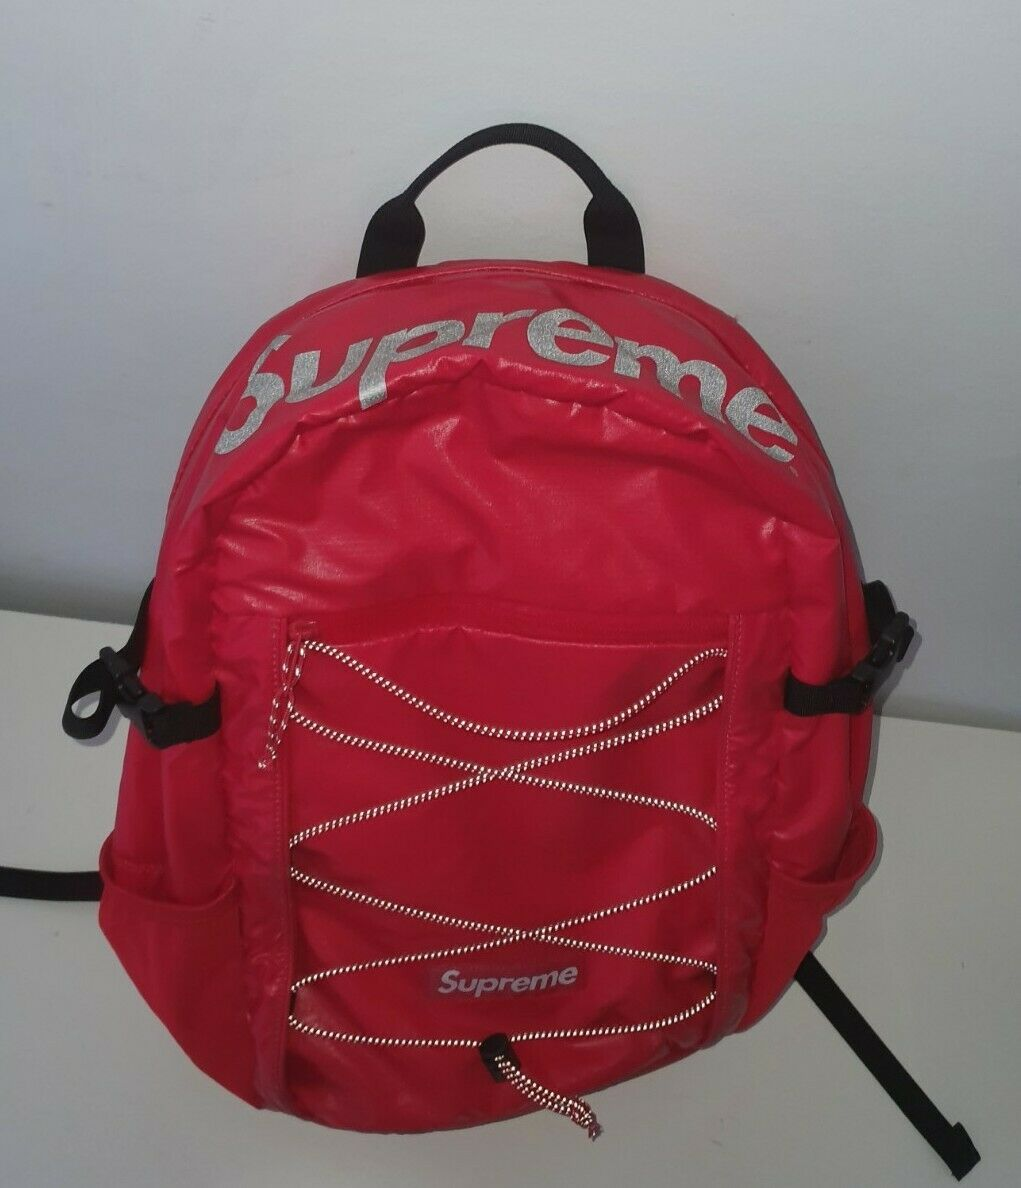 FW17 Supreme red backpack Cordura Fabric box logo Reflective text